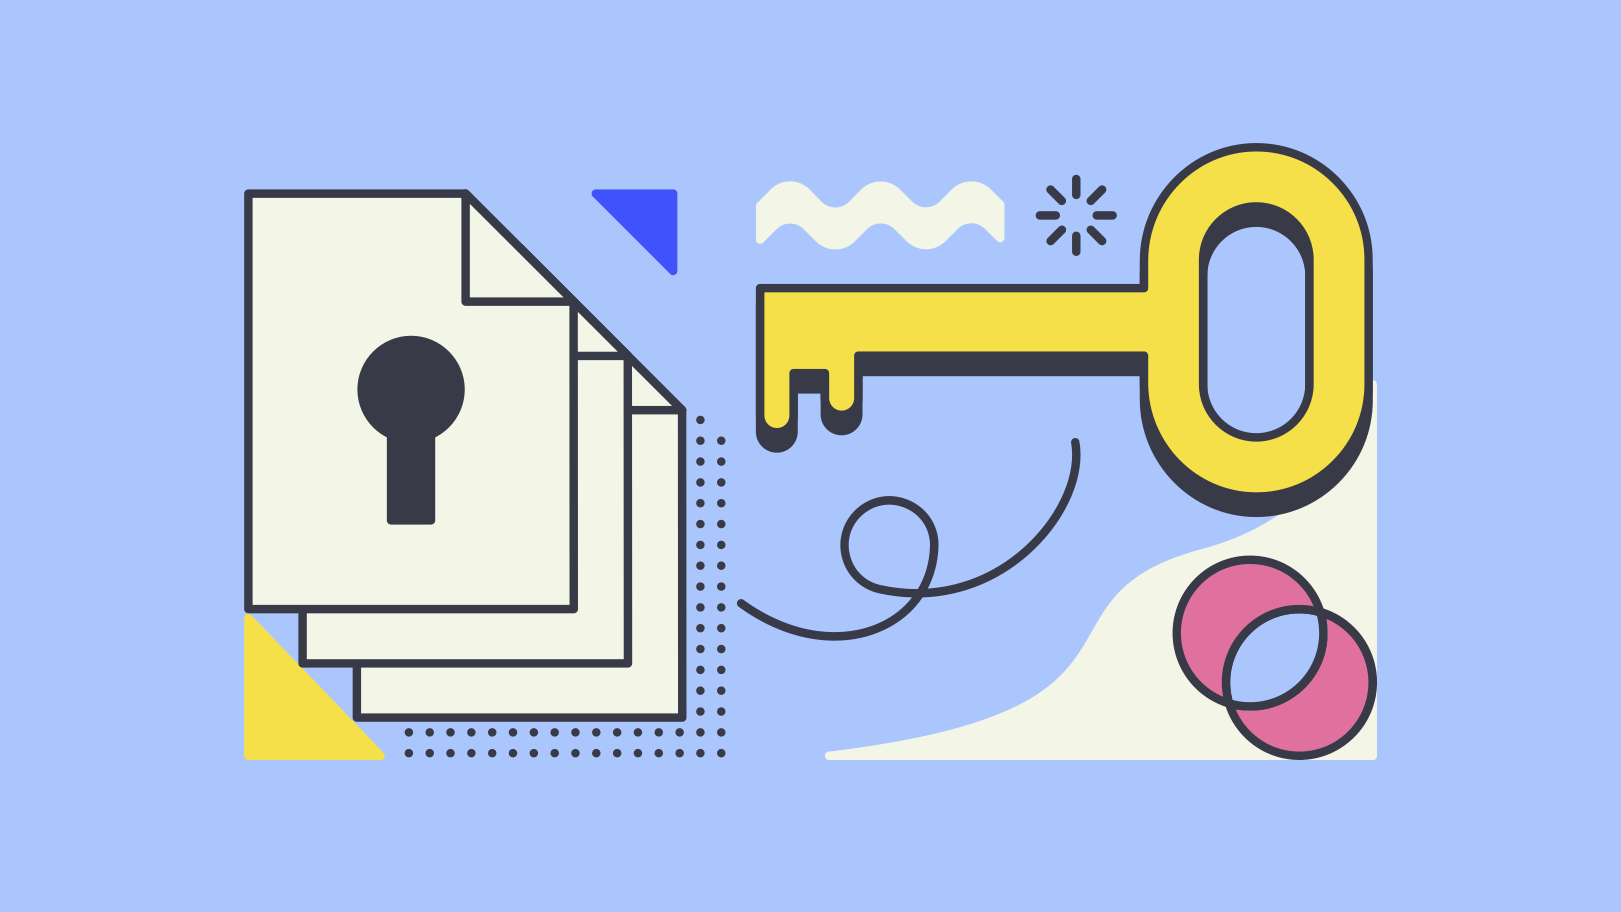 abstract illustration of a key and a lock made of files: privacy